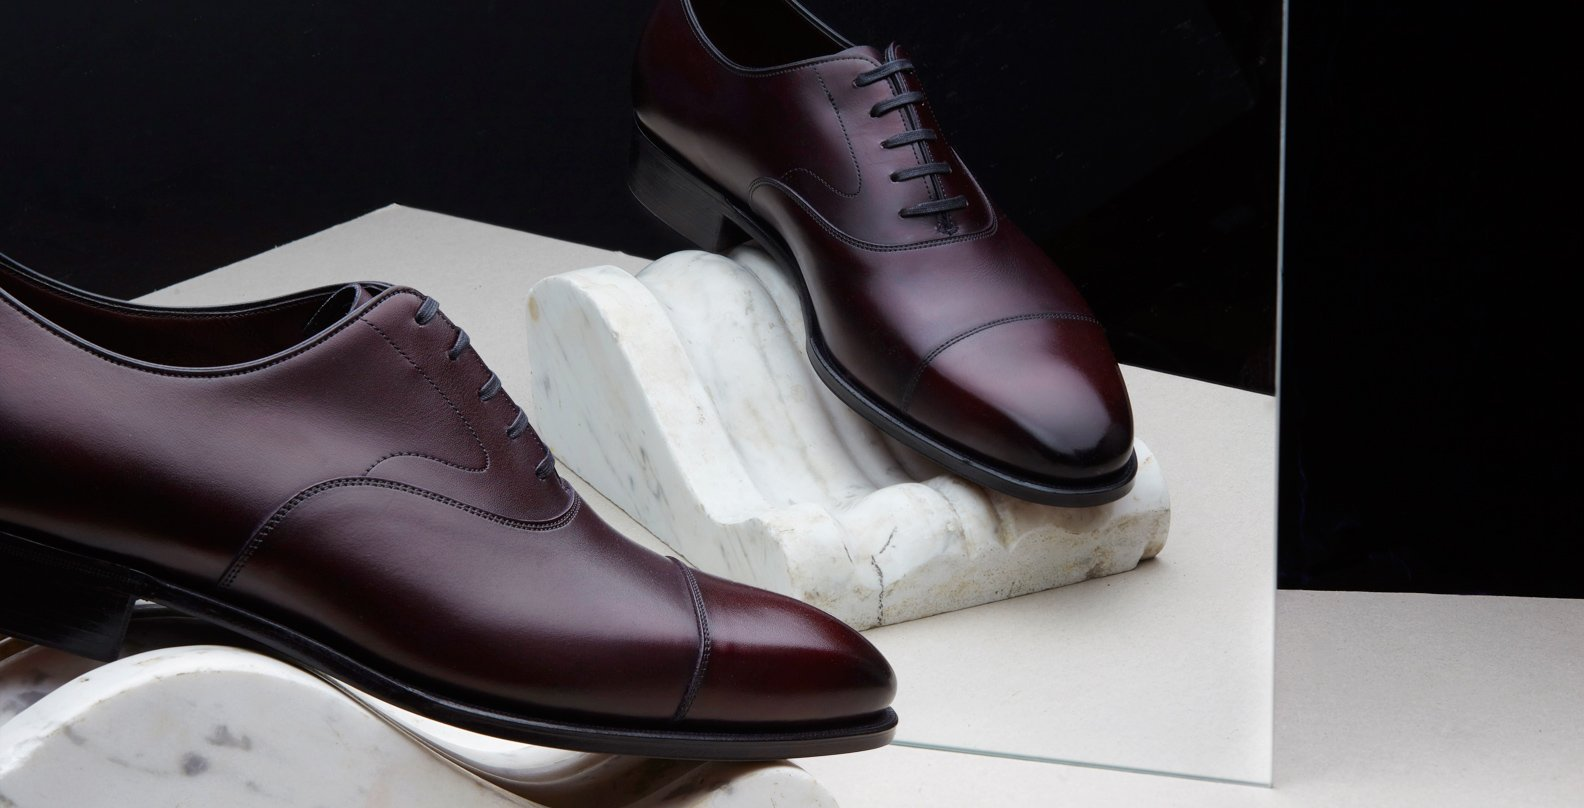 The Chelsea 915 — a timeless almond cap toe